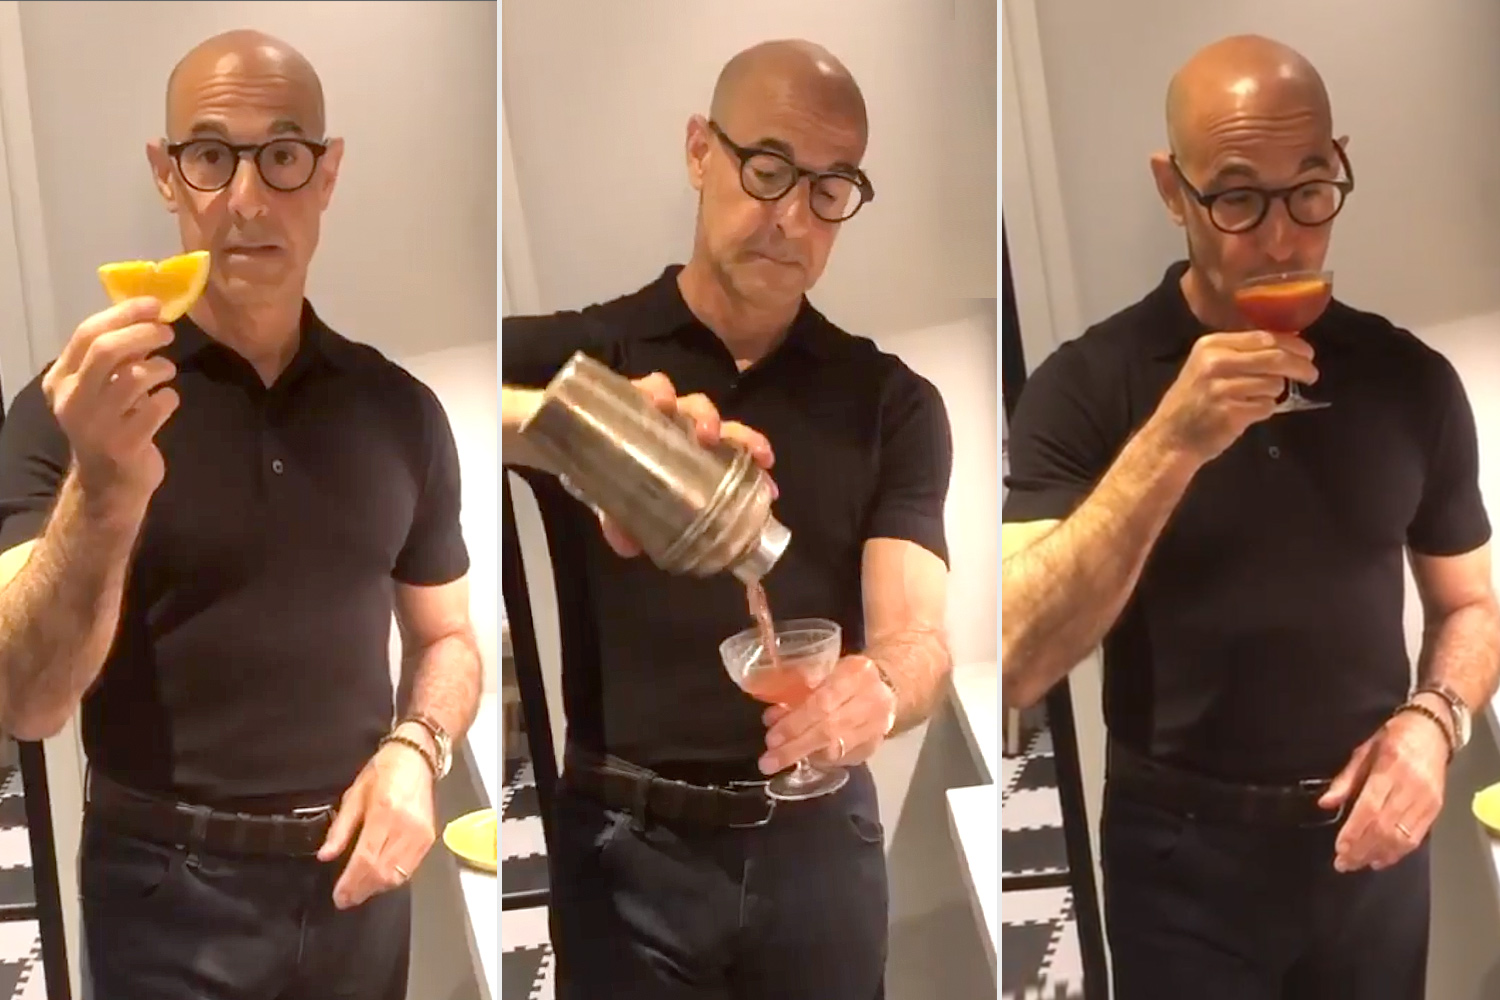 Stanley Tucci Shows Bartending Skills to Make Cocktail for Wife   PEOPLE.com